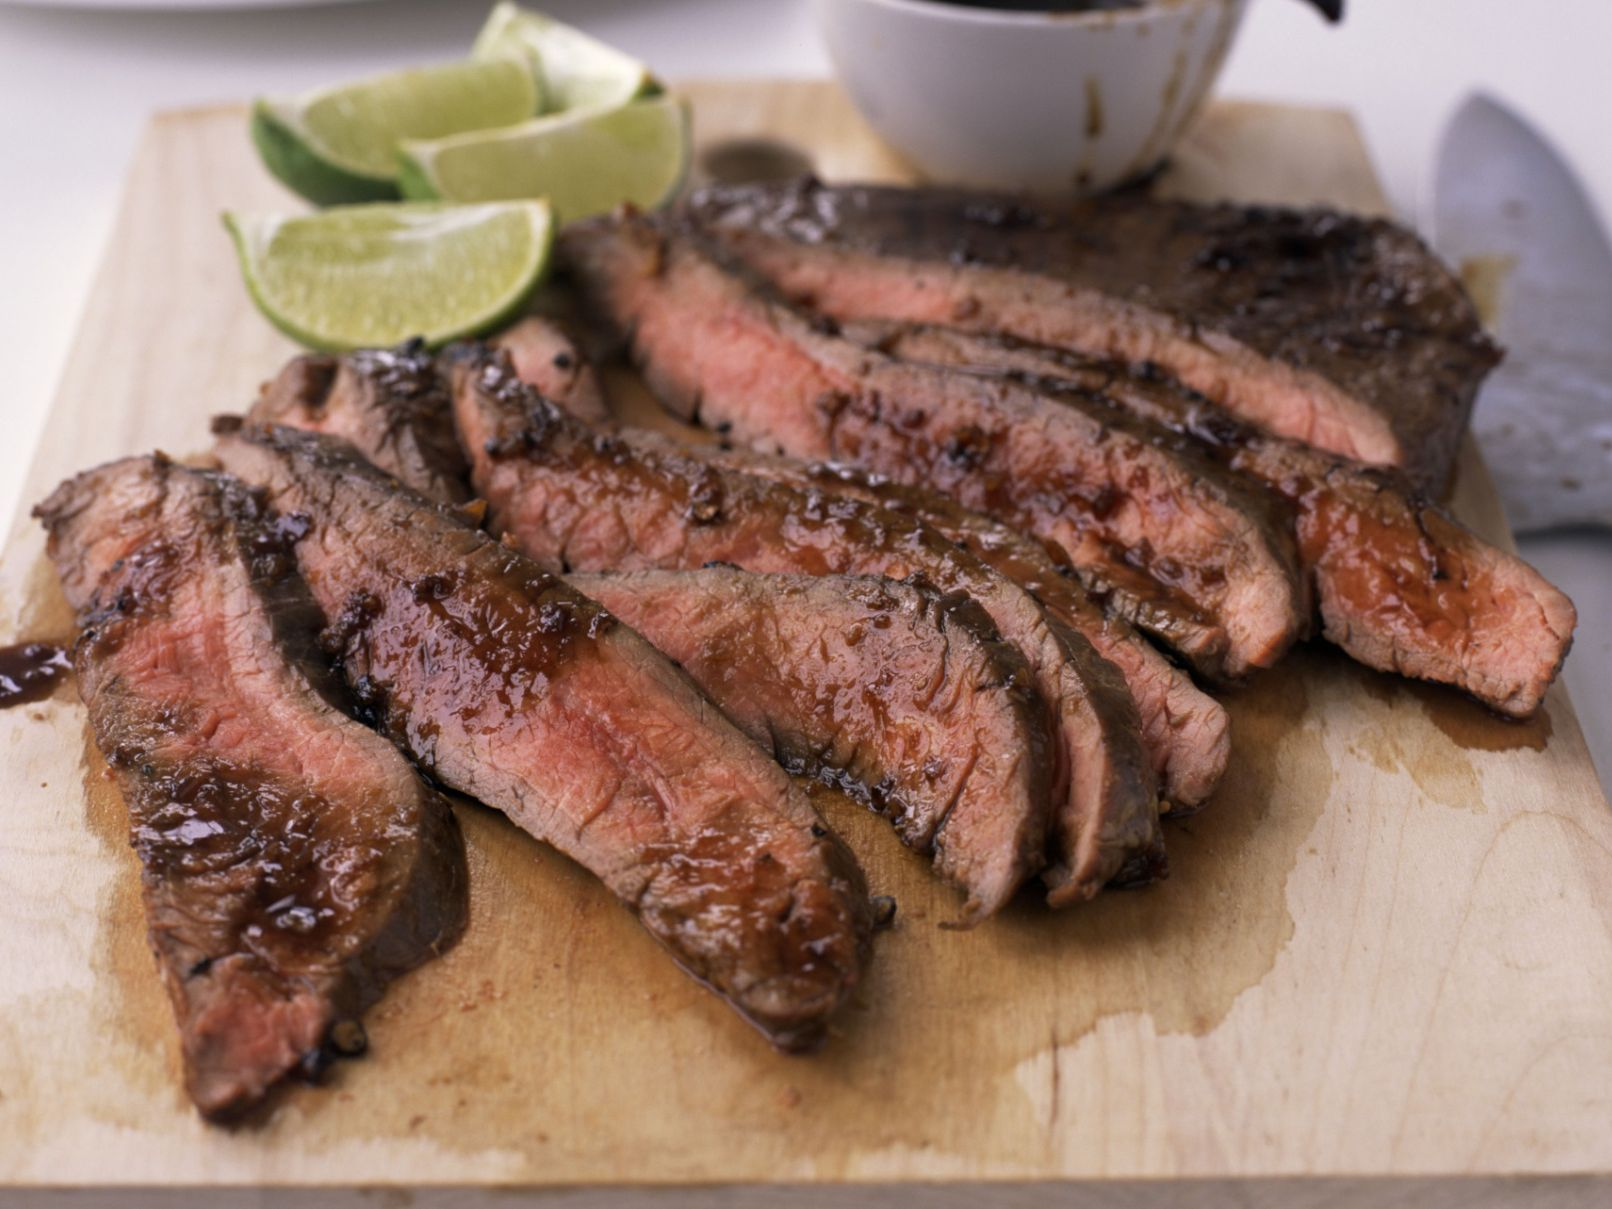 How to Choose Low-Fat Meats